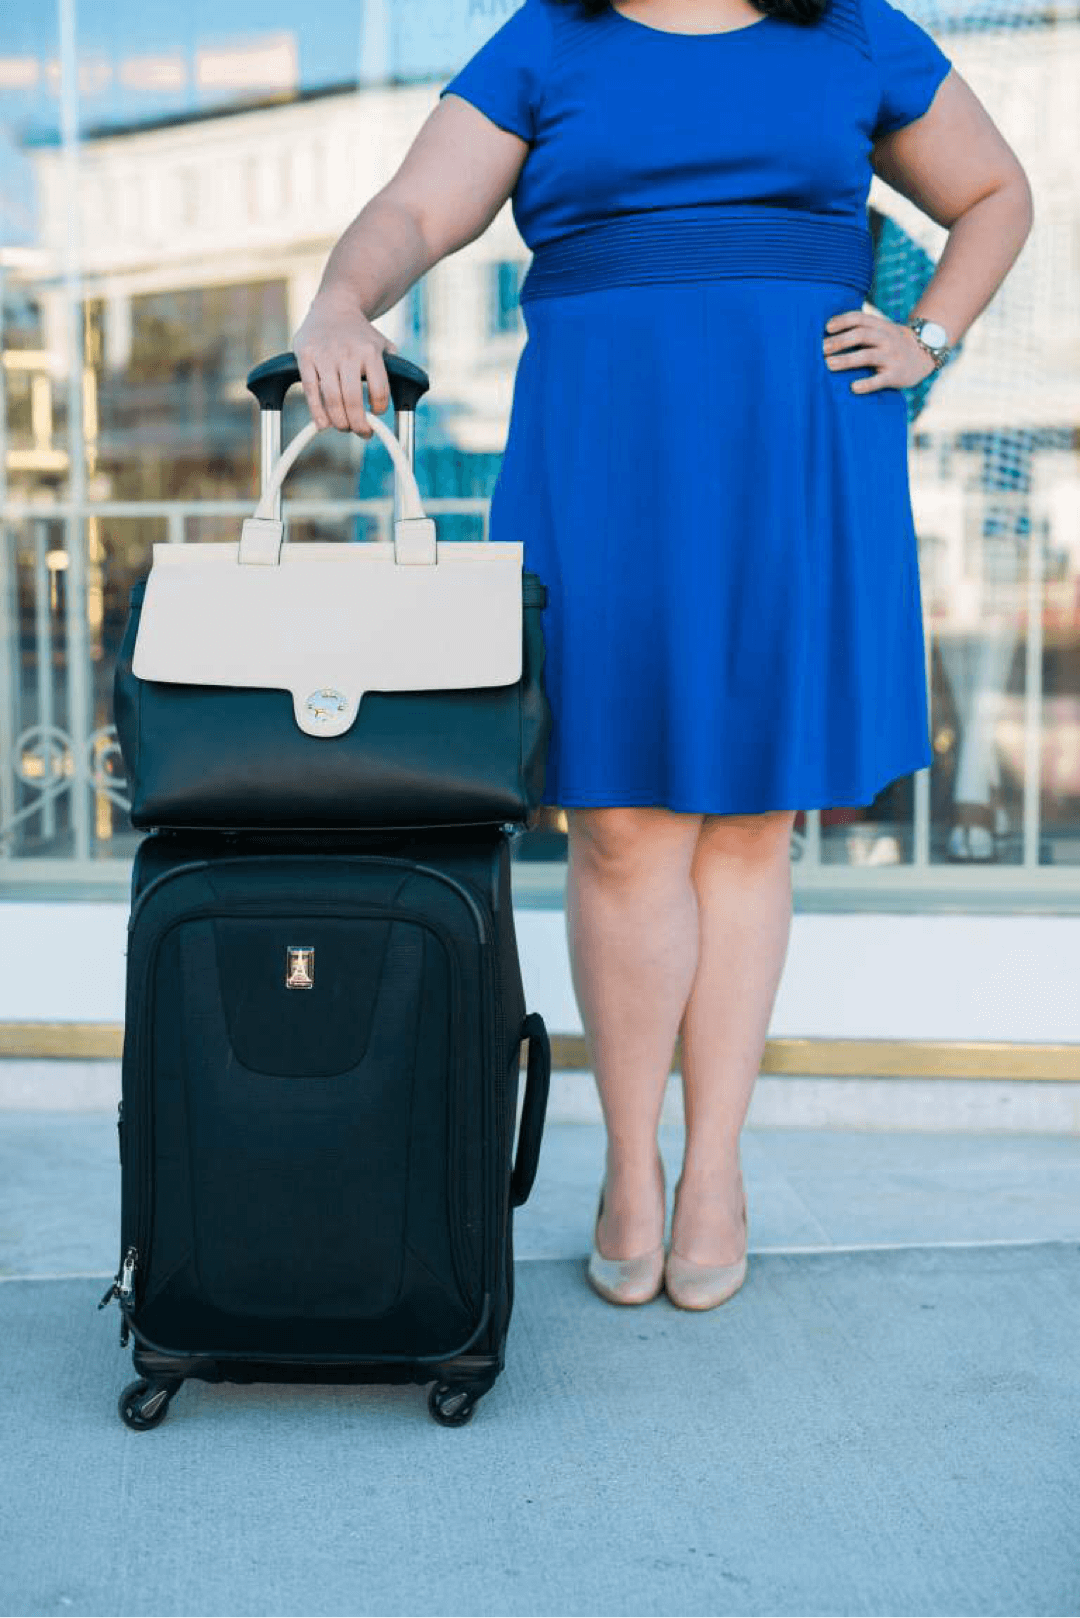 Trying to decide between which expedited airport security package? I'm breaking down the top 3 programs, TSA PreCheck, Global Entry and CLEAR and letting you know which one is the best for you!